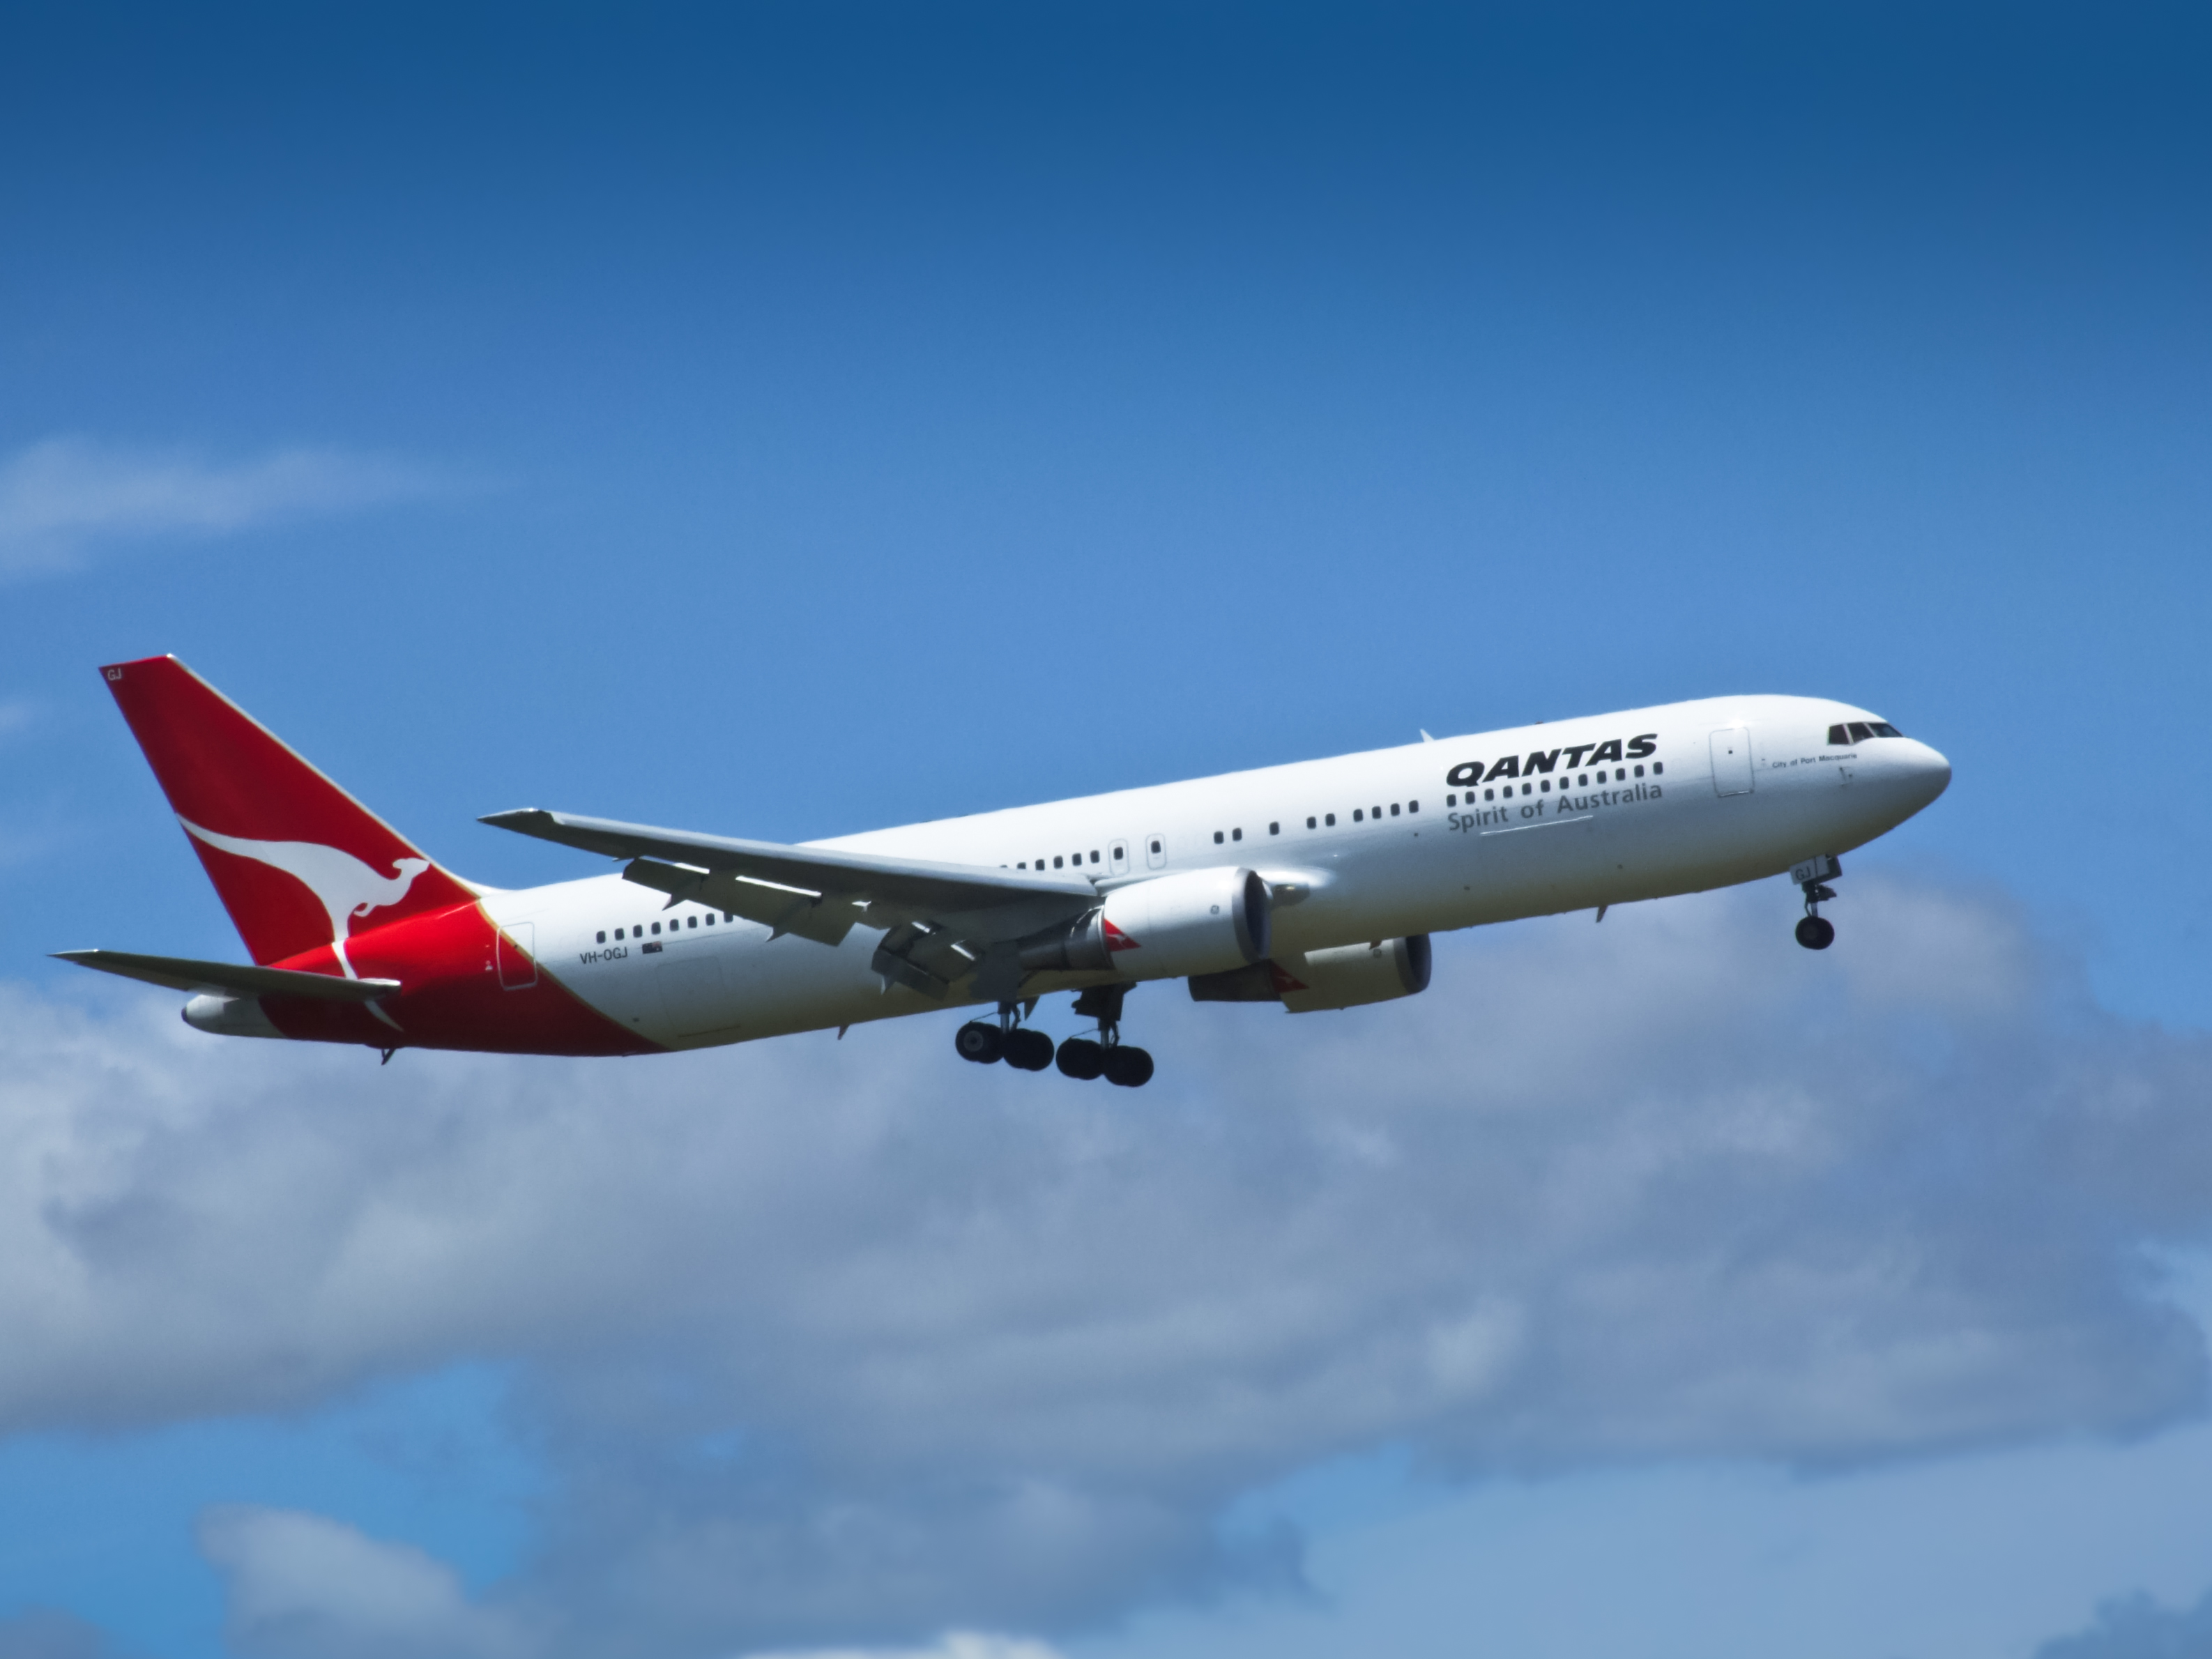 https://upload.wikimedia.org/wikipedia/commons/1/14/01_Qantas_VH-OGJ_Boeing_767.jpg